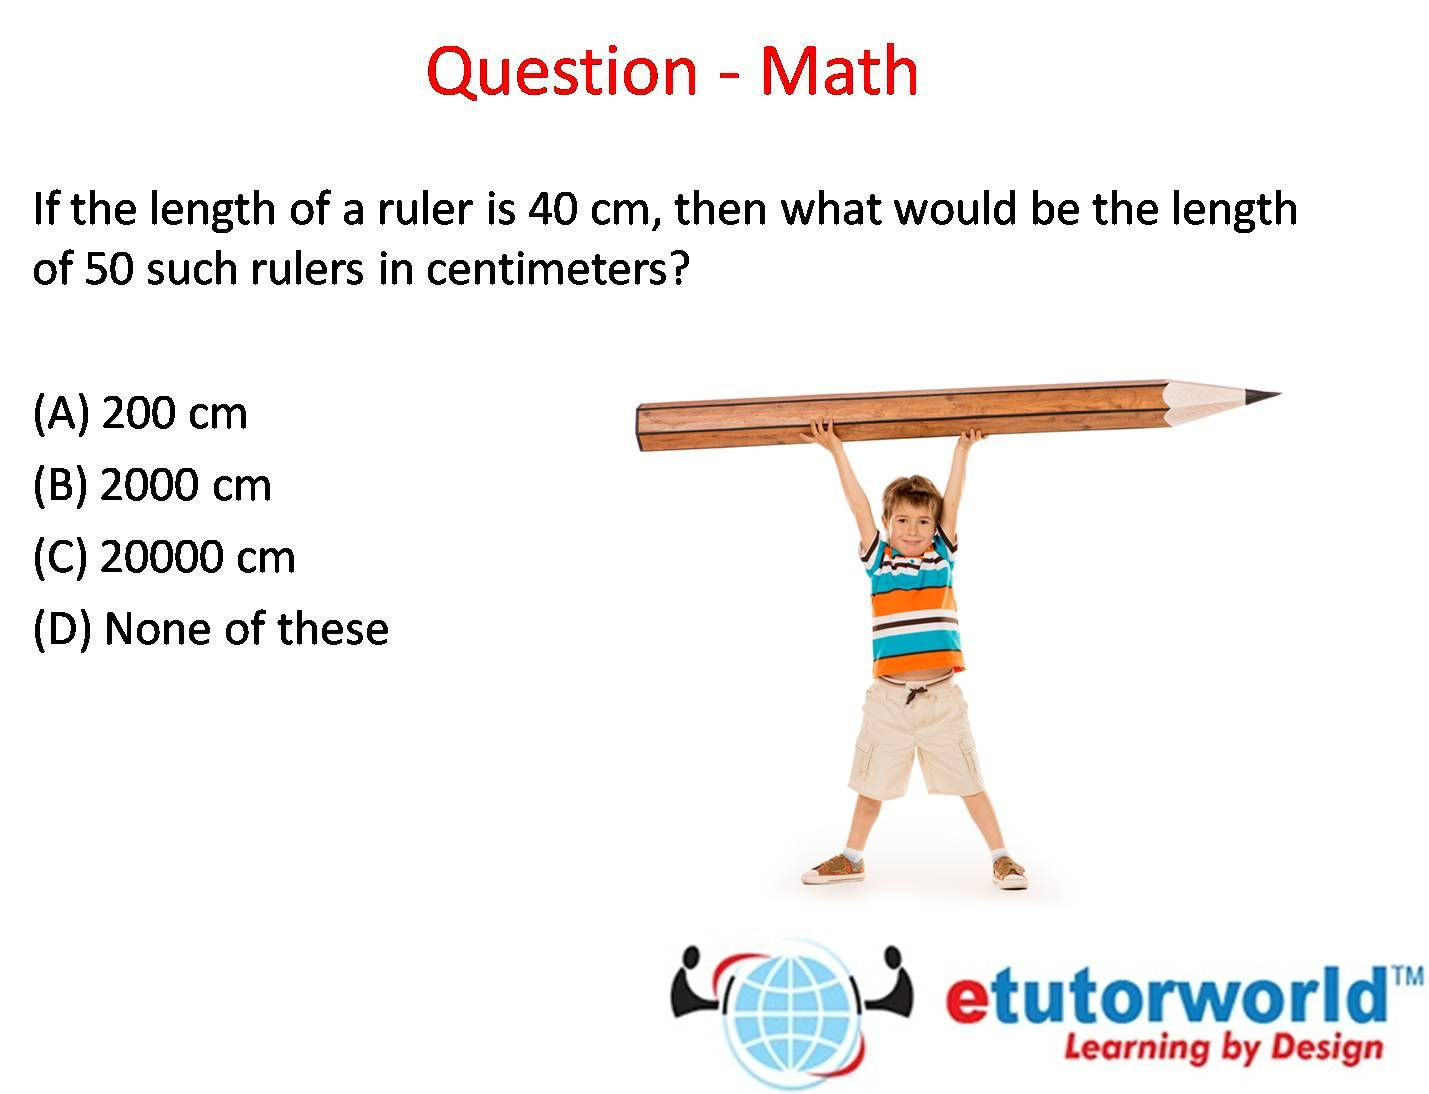 Online Math Tutor With Images